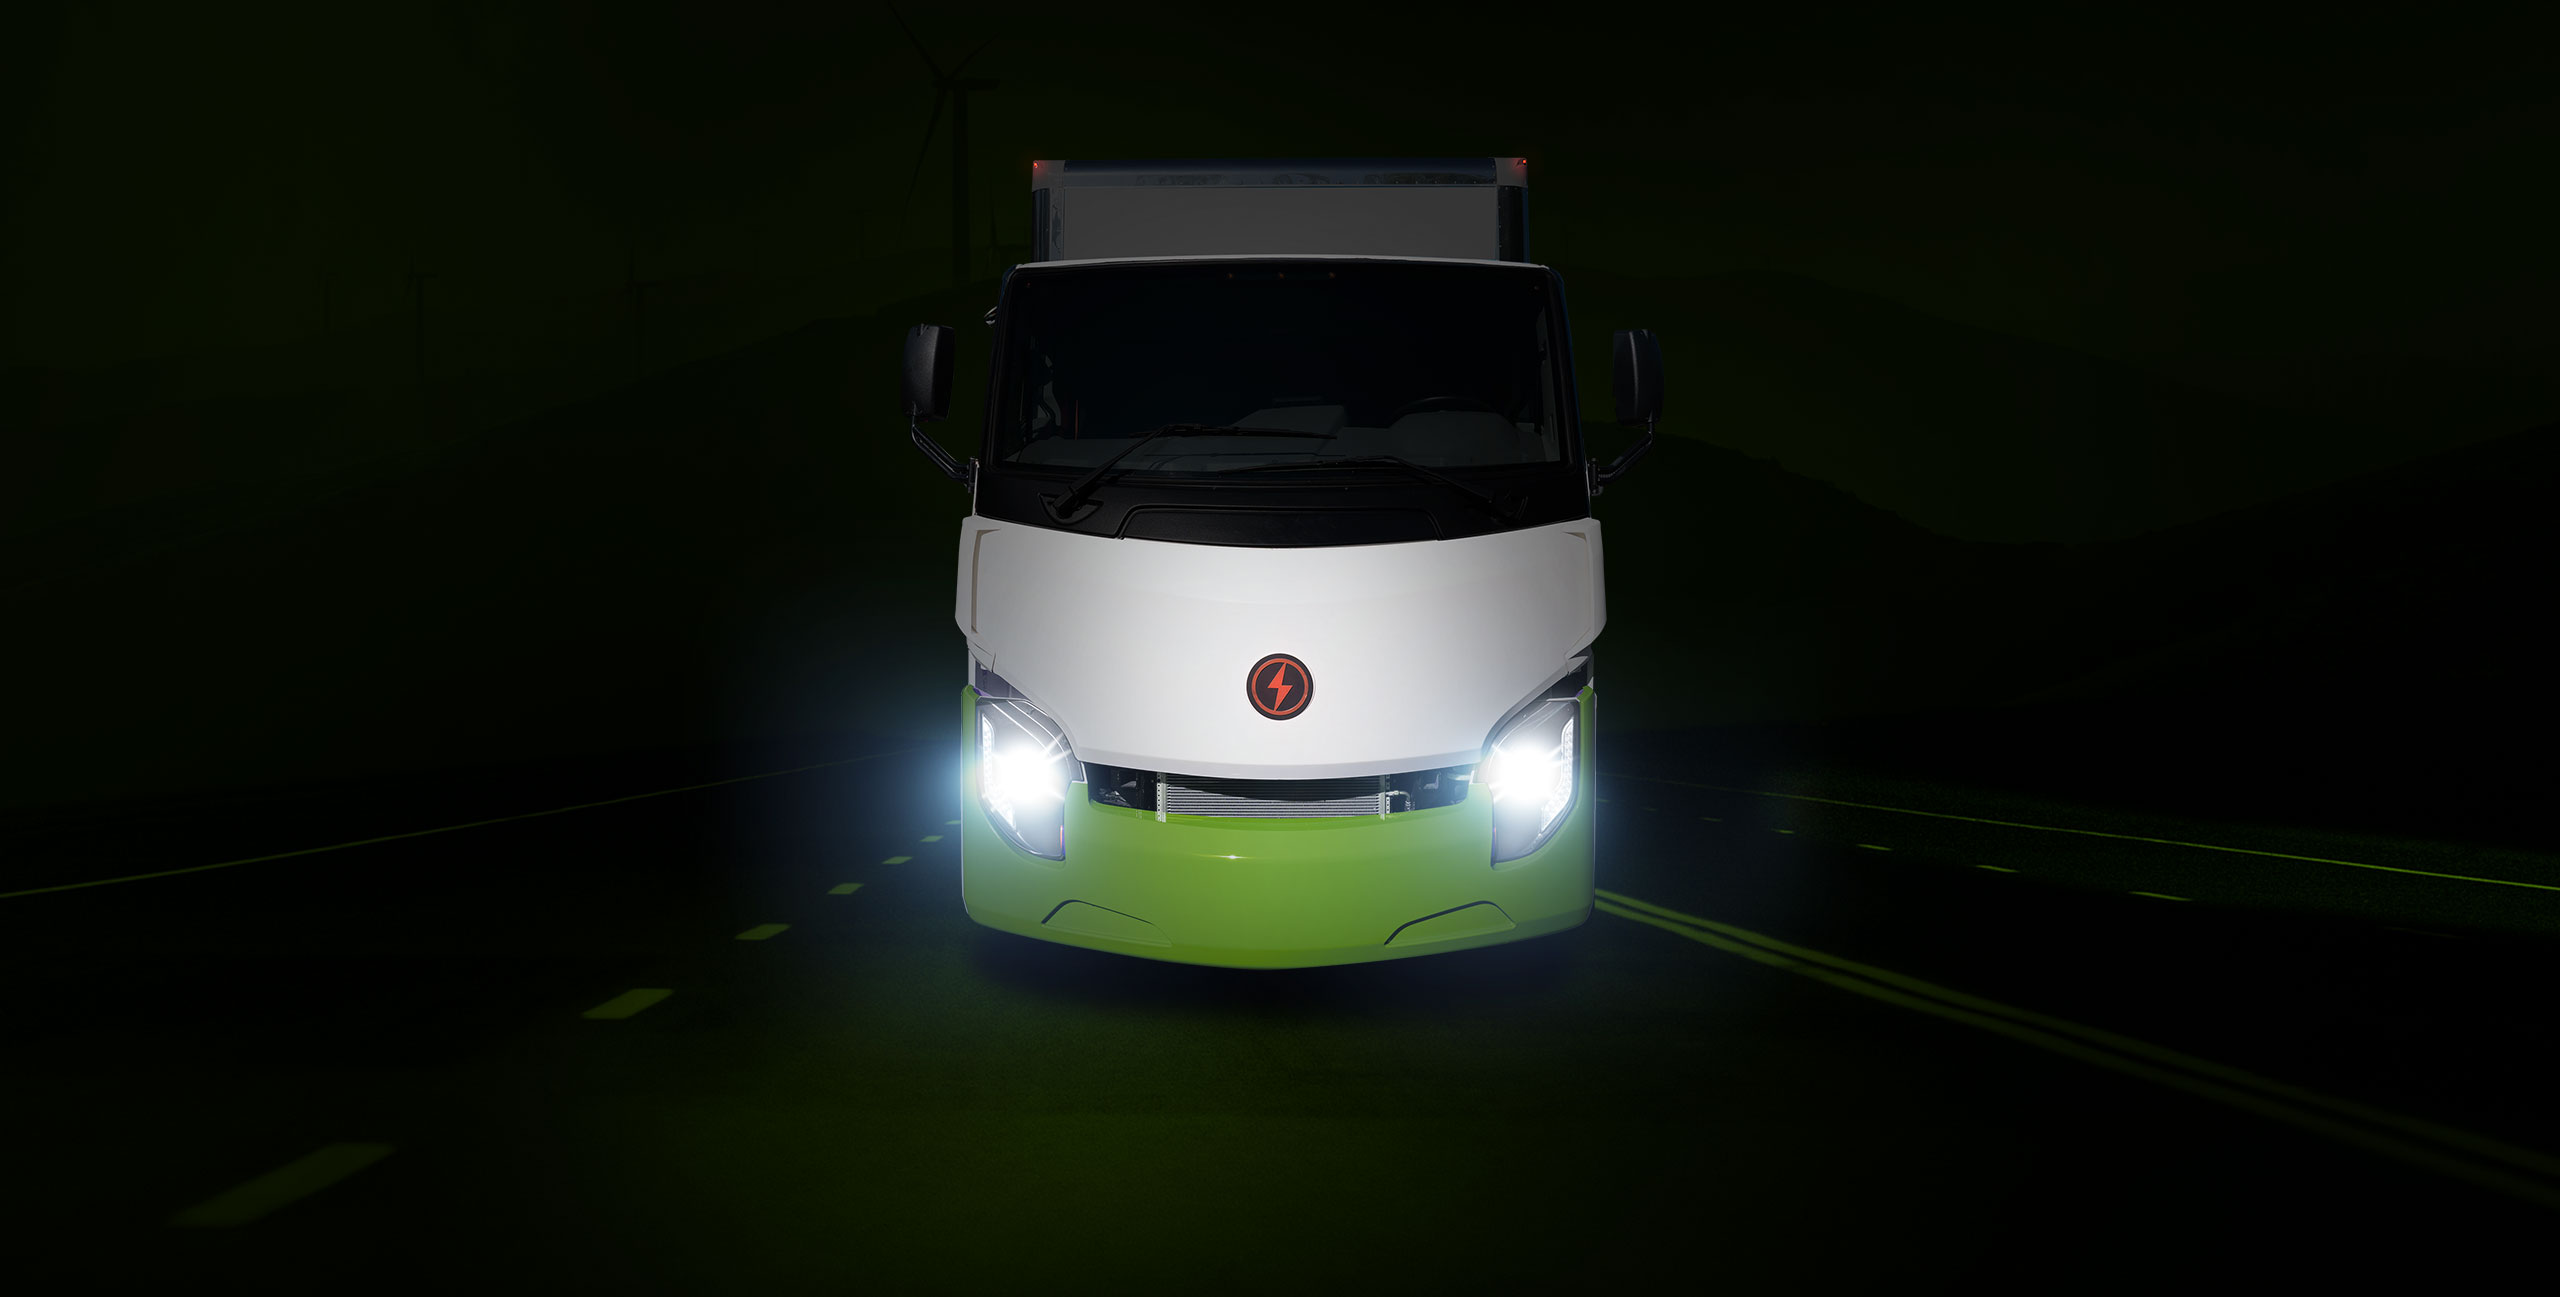 Green and white Lion 8 truck driving forward on road with headlights on